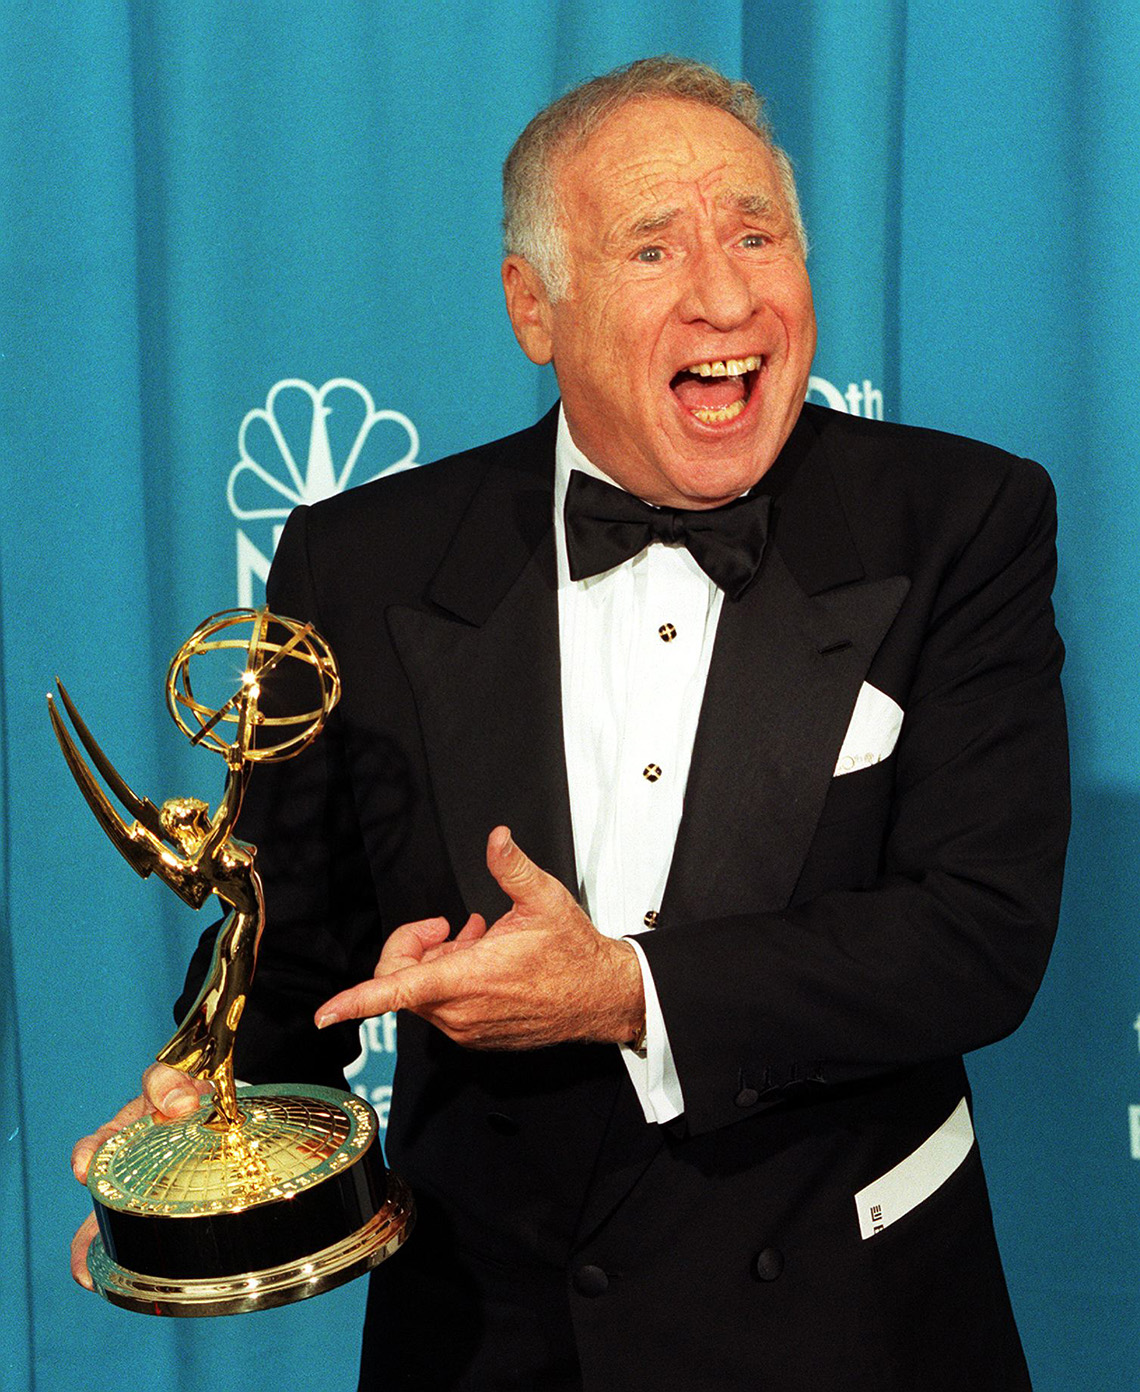 Mel Brooks points to his Emmy award after winning at the 50th Annual Primetime Emmy Awards